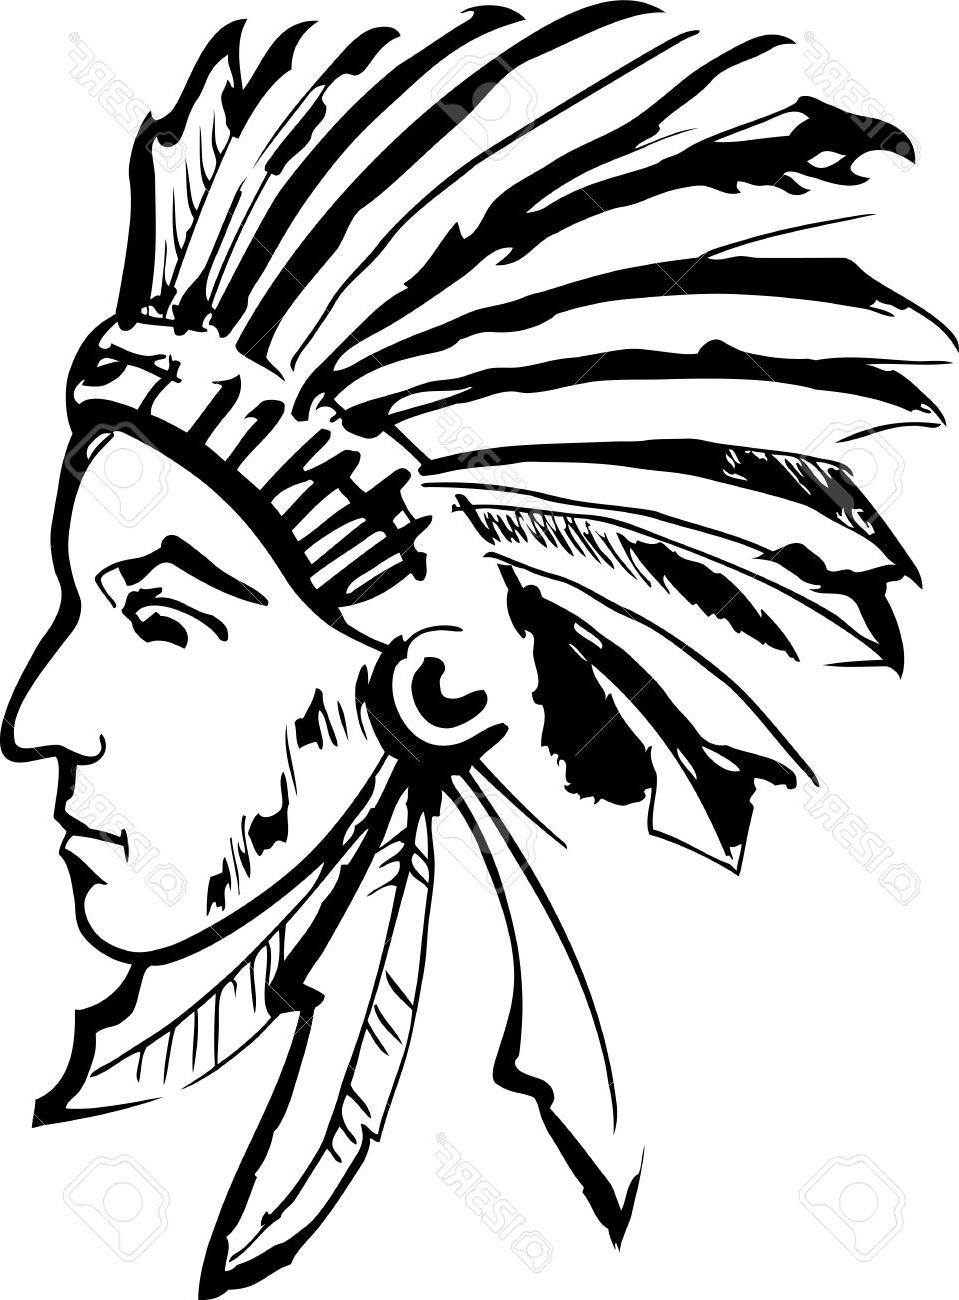 959x1300 Top Native American Indian Chief Stock Vector Cdr